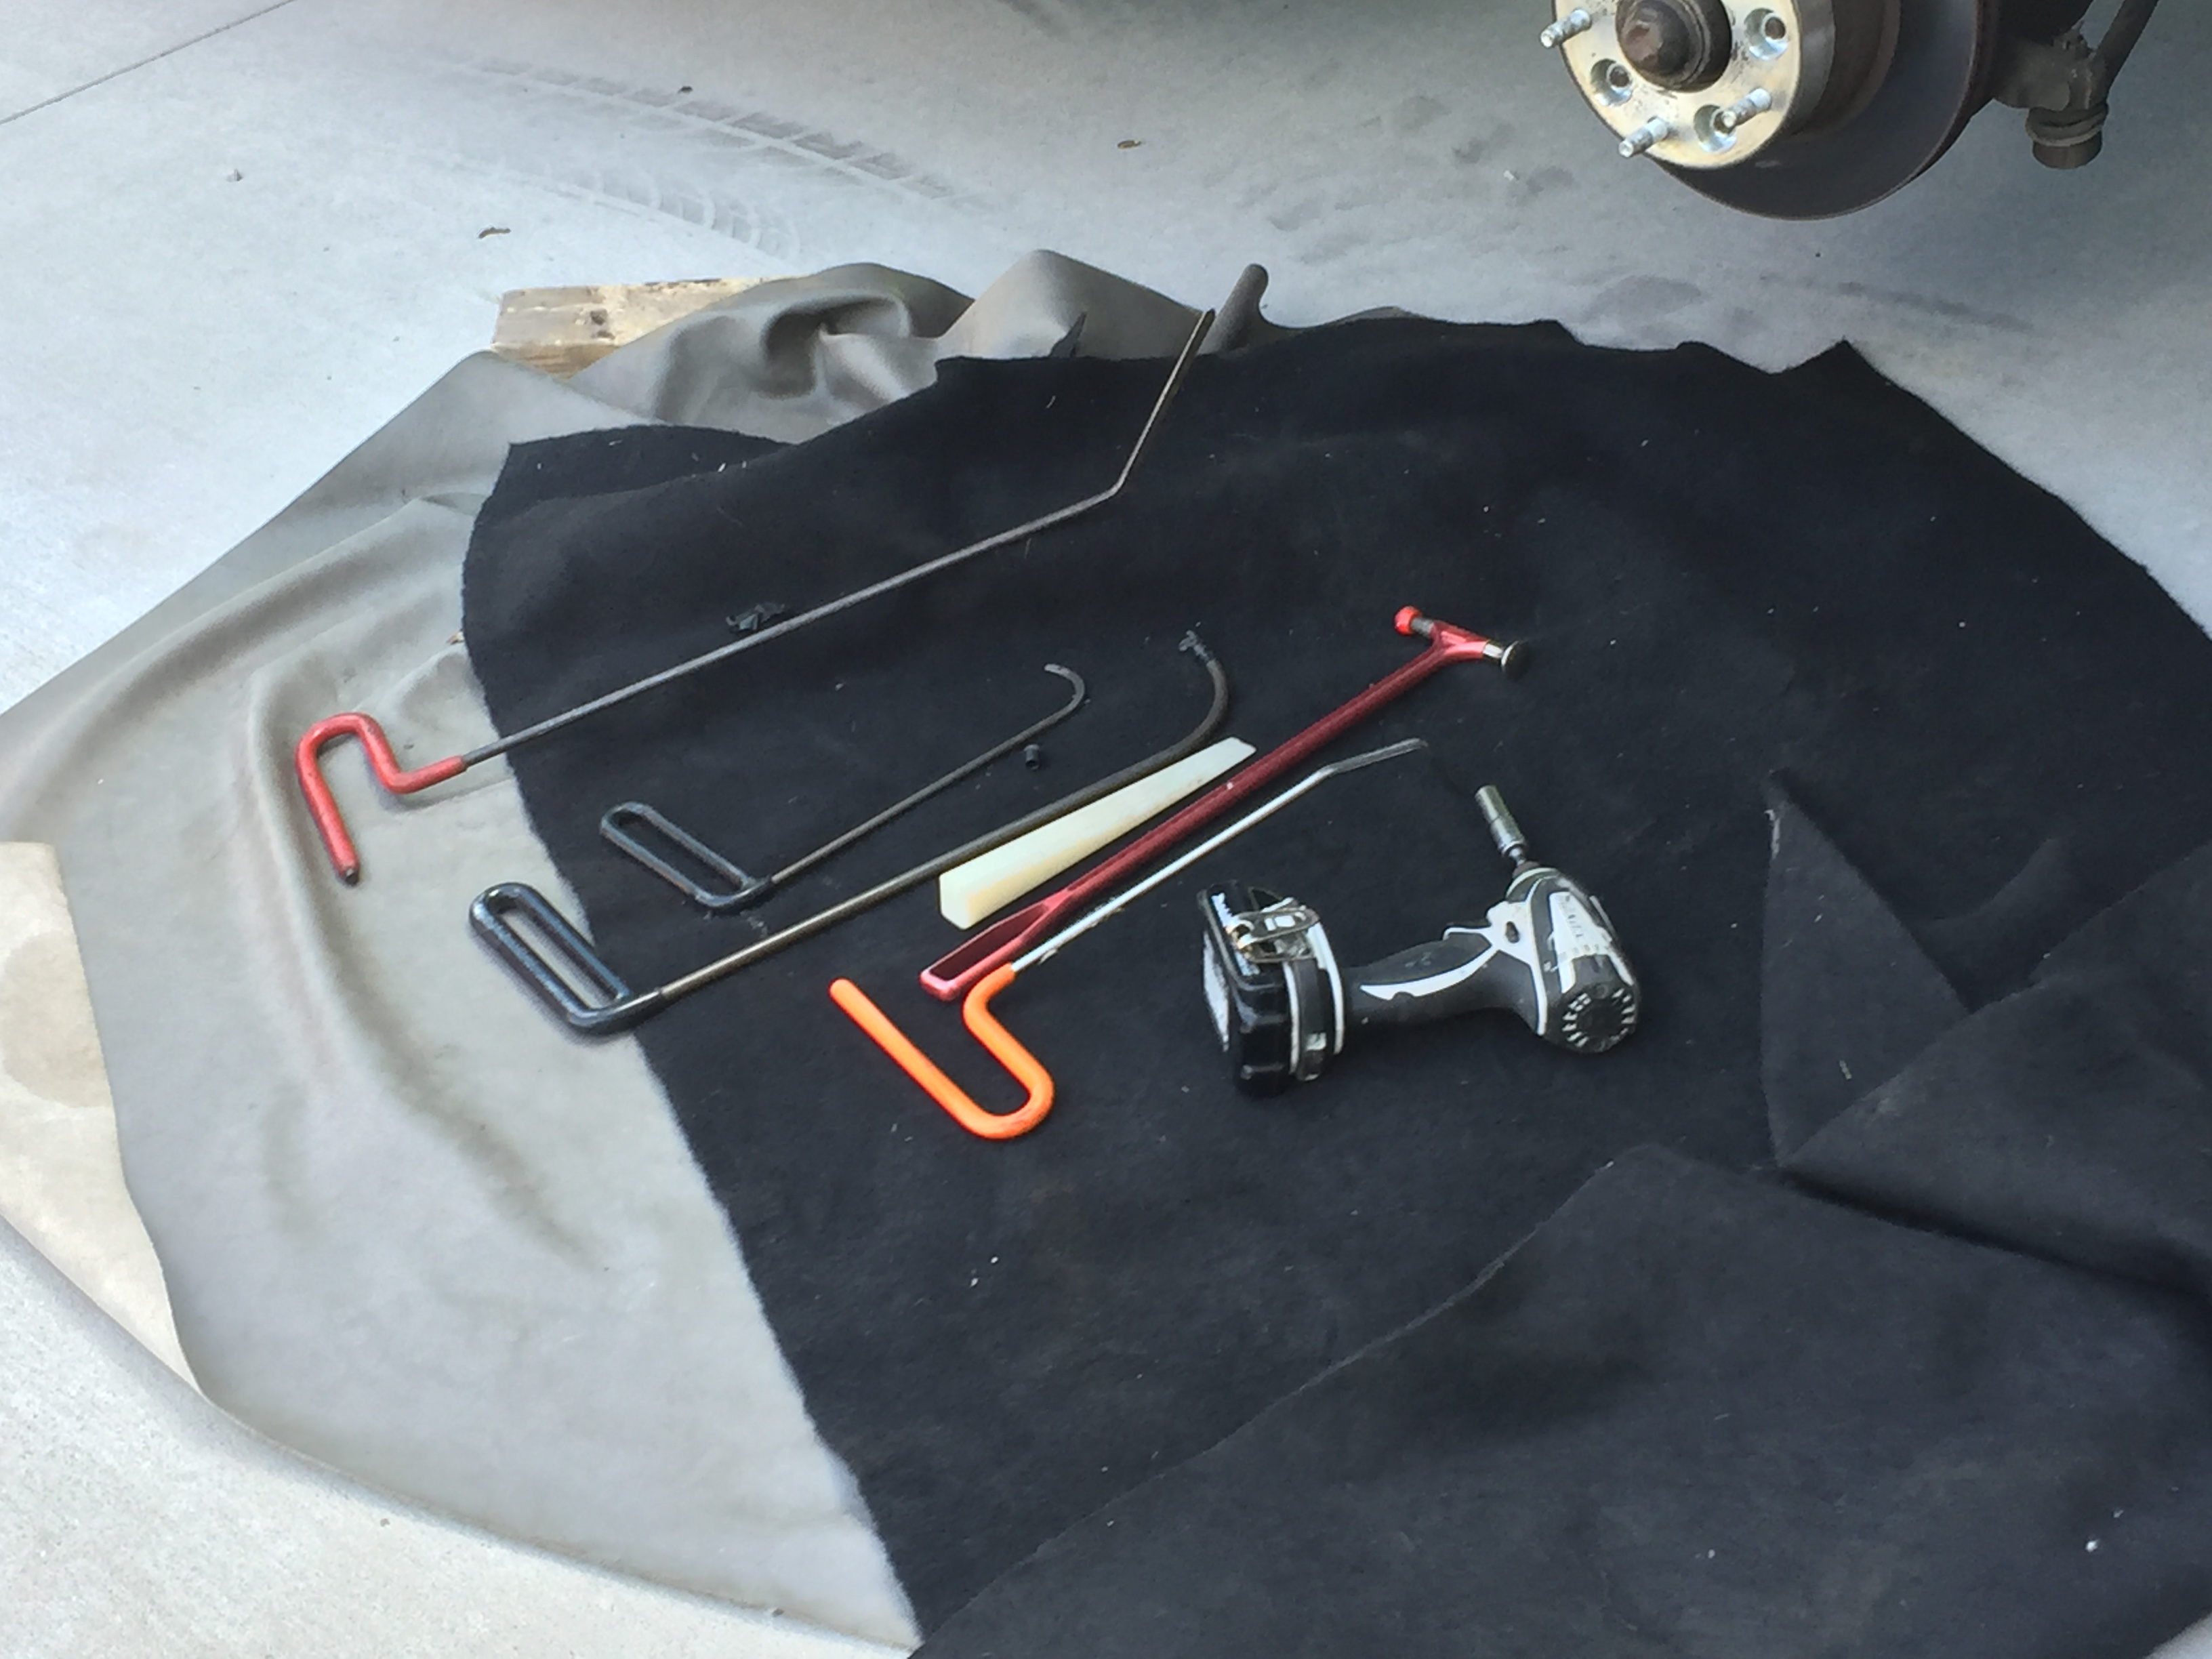 1994 Chevy Caprice, Paintless Dent Removal, Passenger Fender, Springfield, Illinois, Mobile Dent Repair http://217dent.com Tools Used in this repair